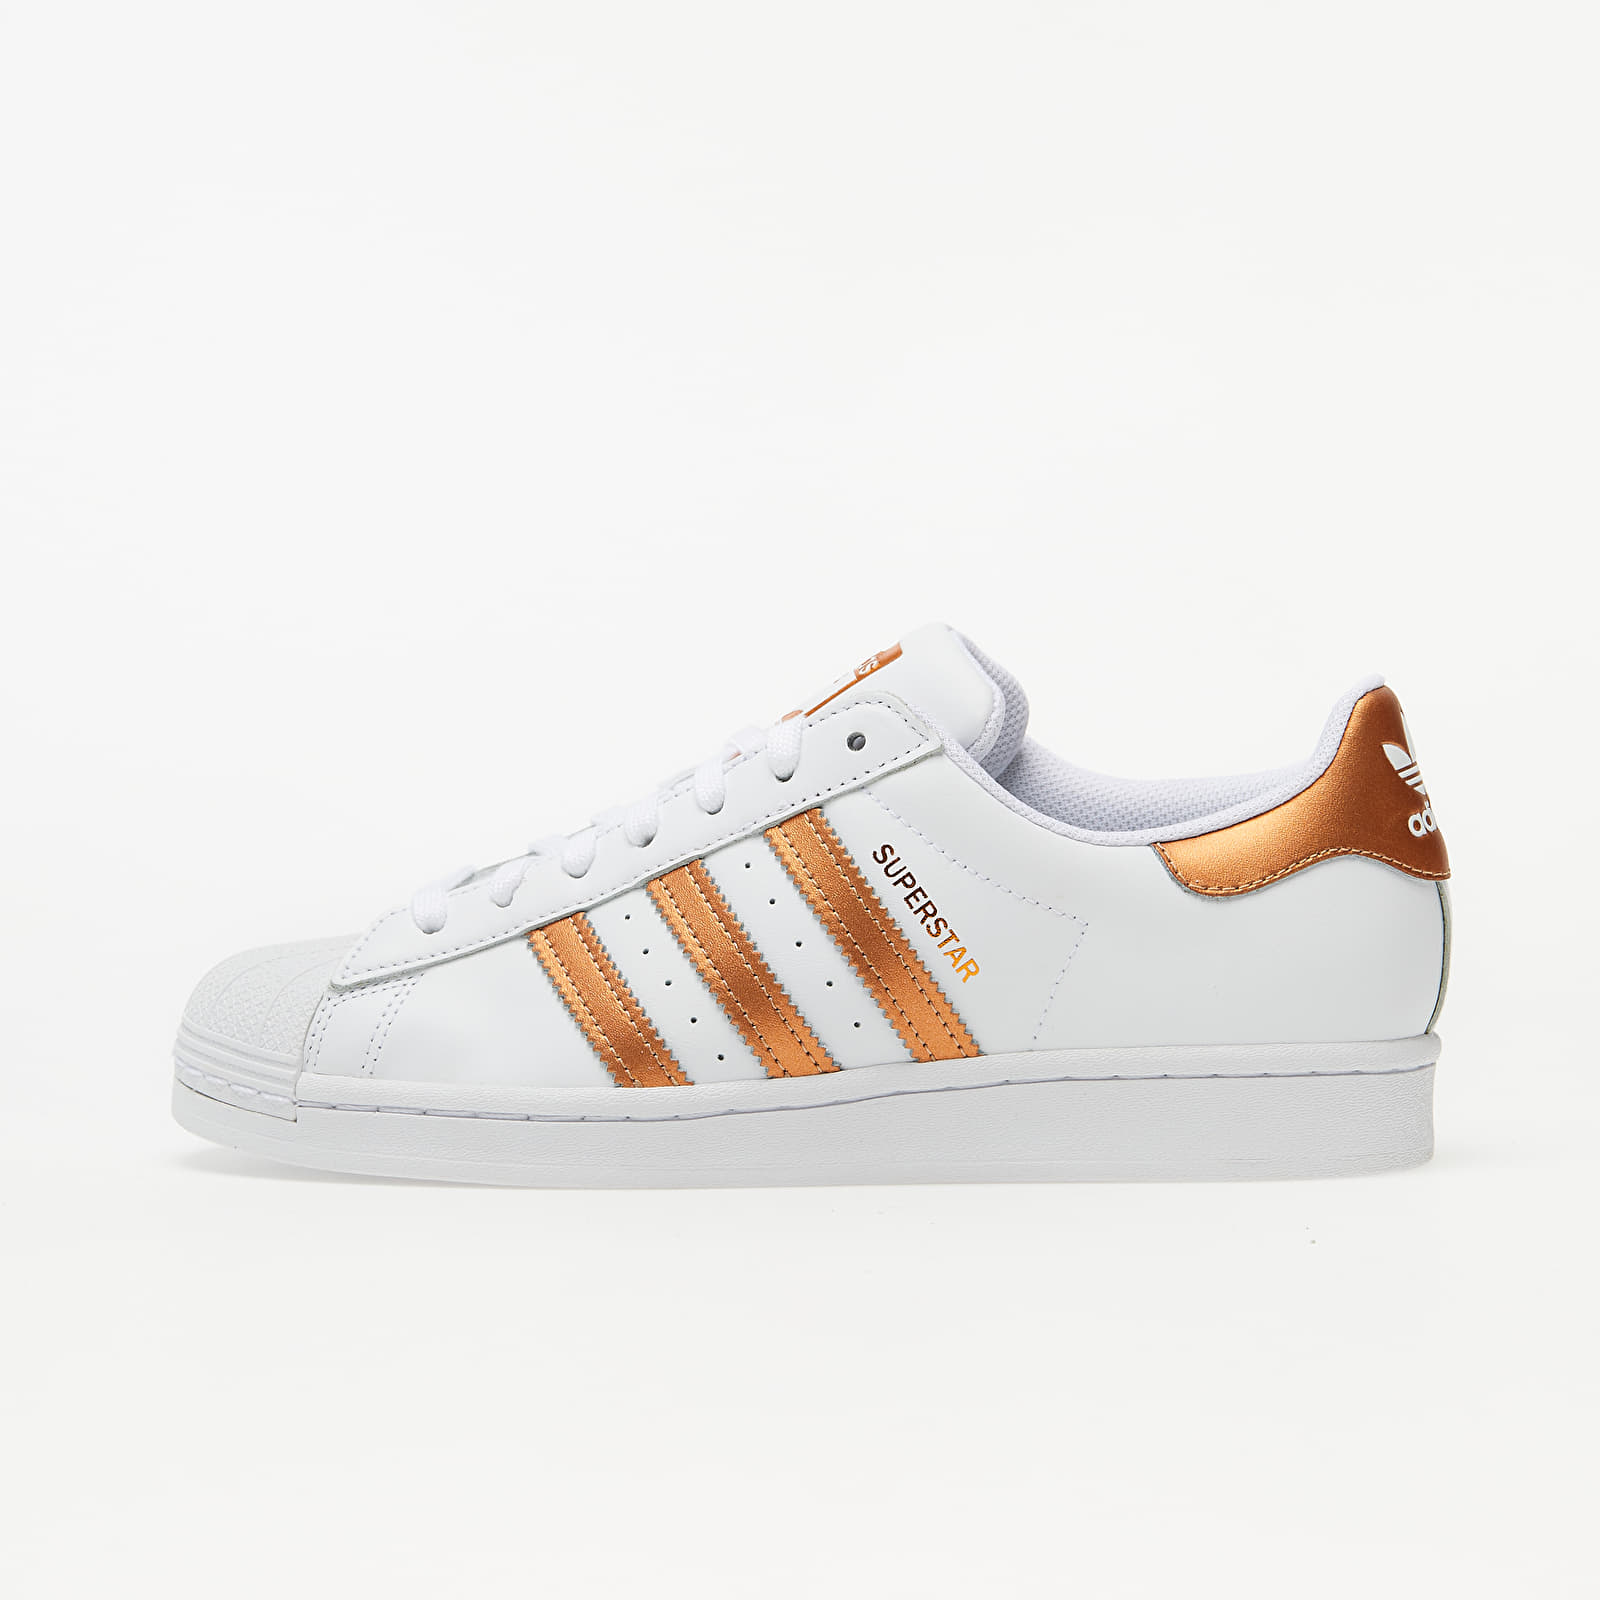 adidas Superstar W Ftw White/ Copper Metalic/ Core Black EUR 37 1/3